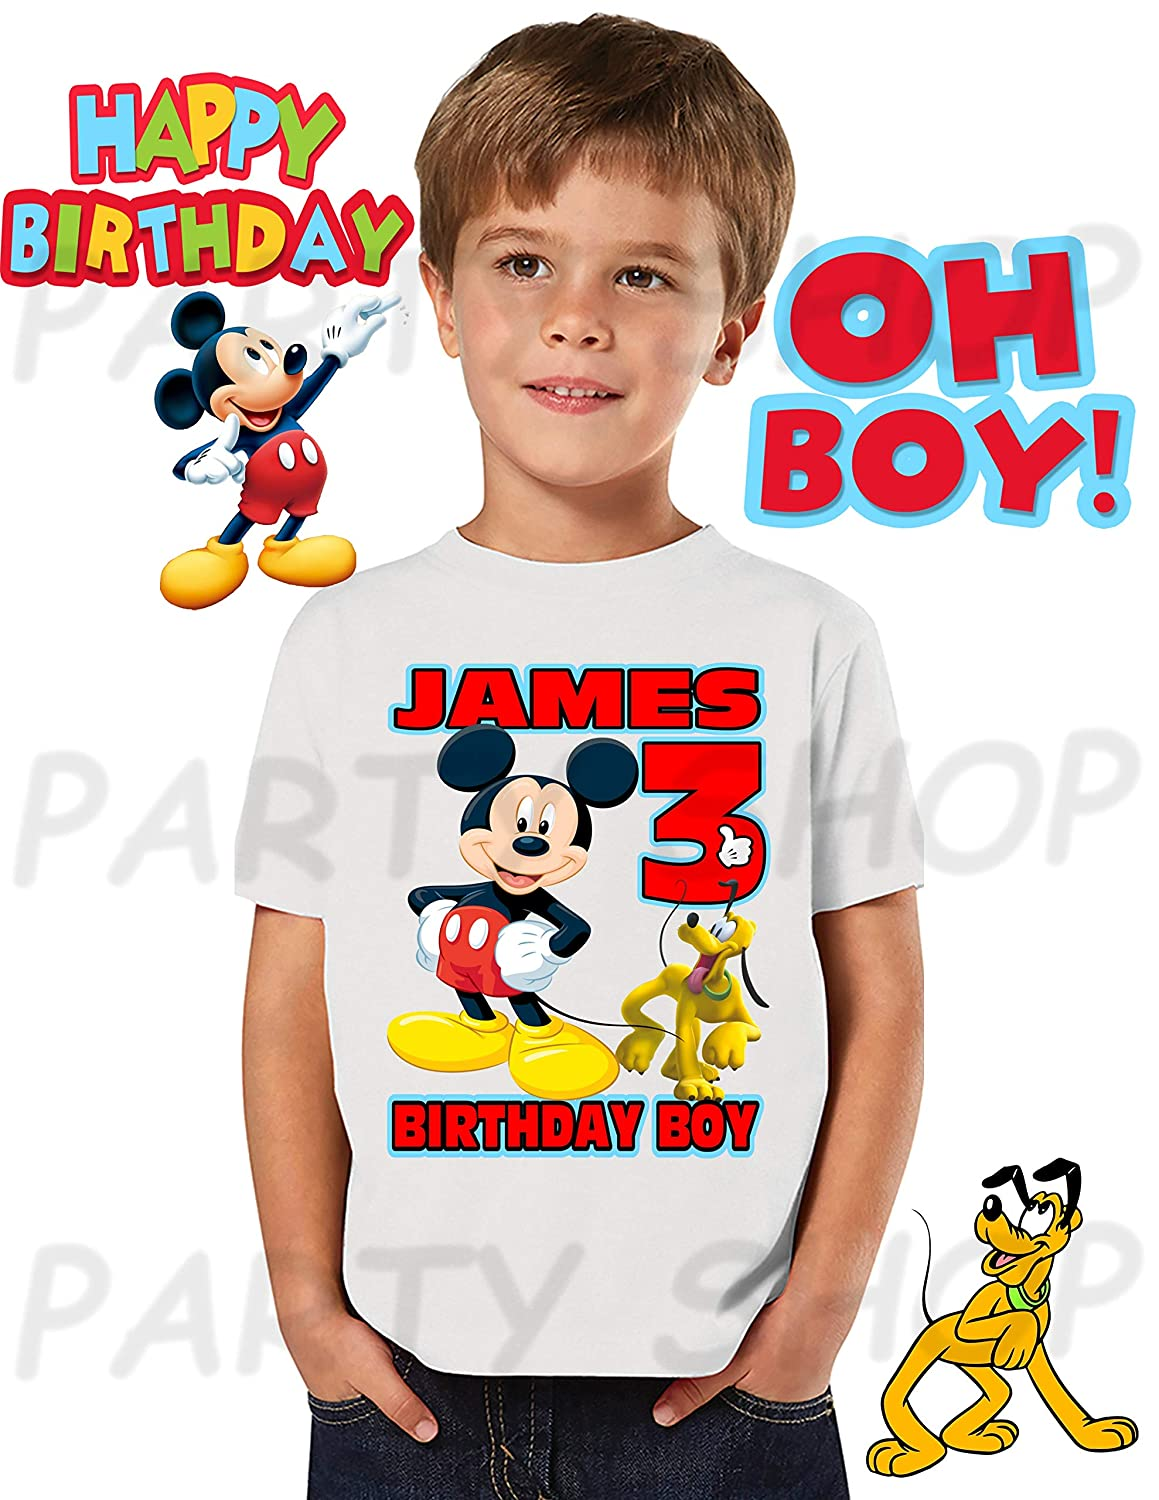 Mickey Mouse Birthday ShirtMICKEY MOUSE PartyADD Any Name And Age FAMILY Matching Shirts Boys Girls Shirt